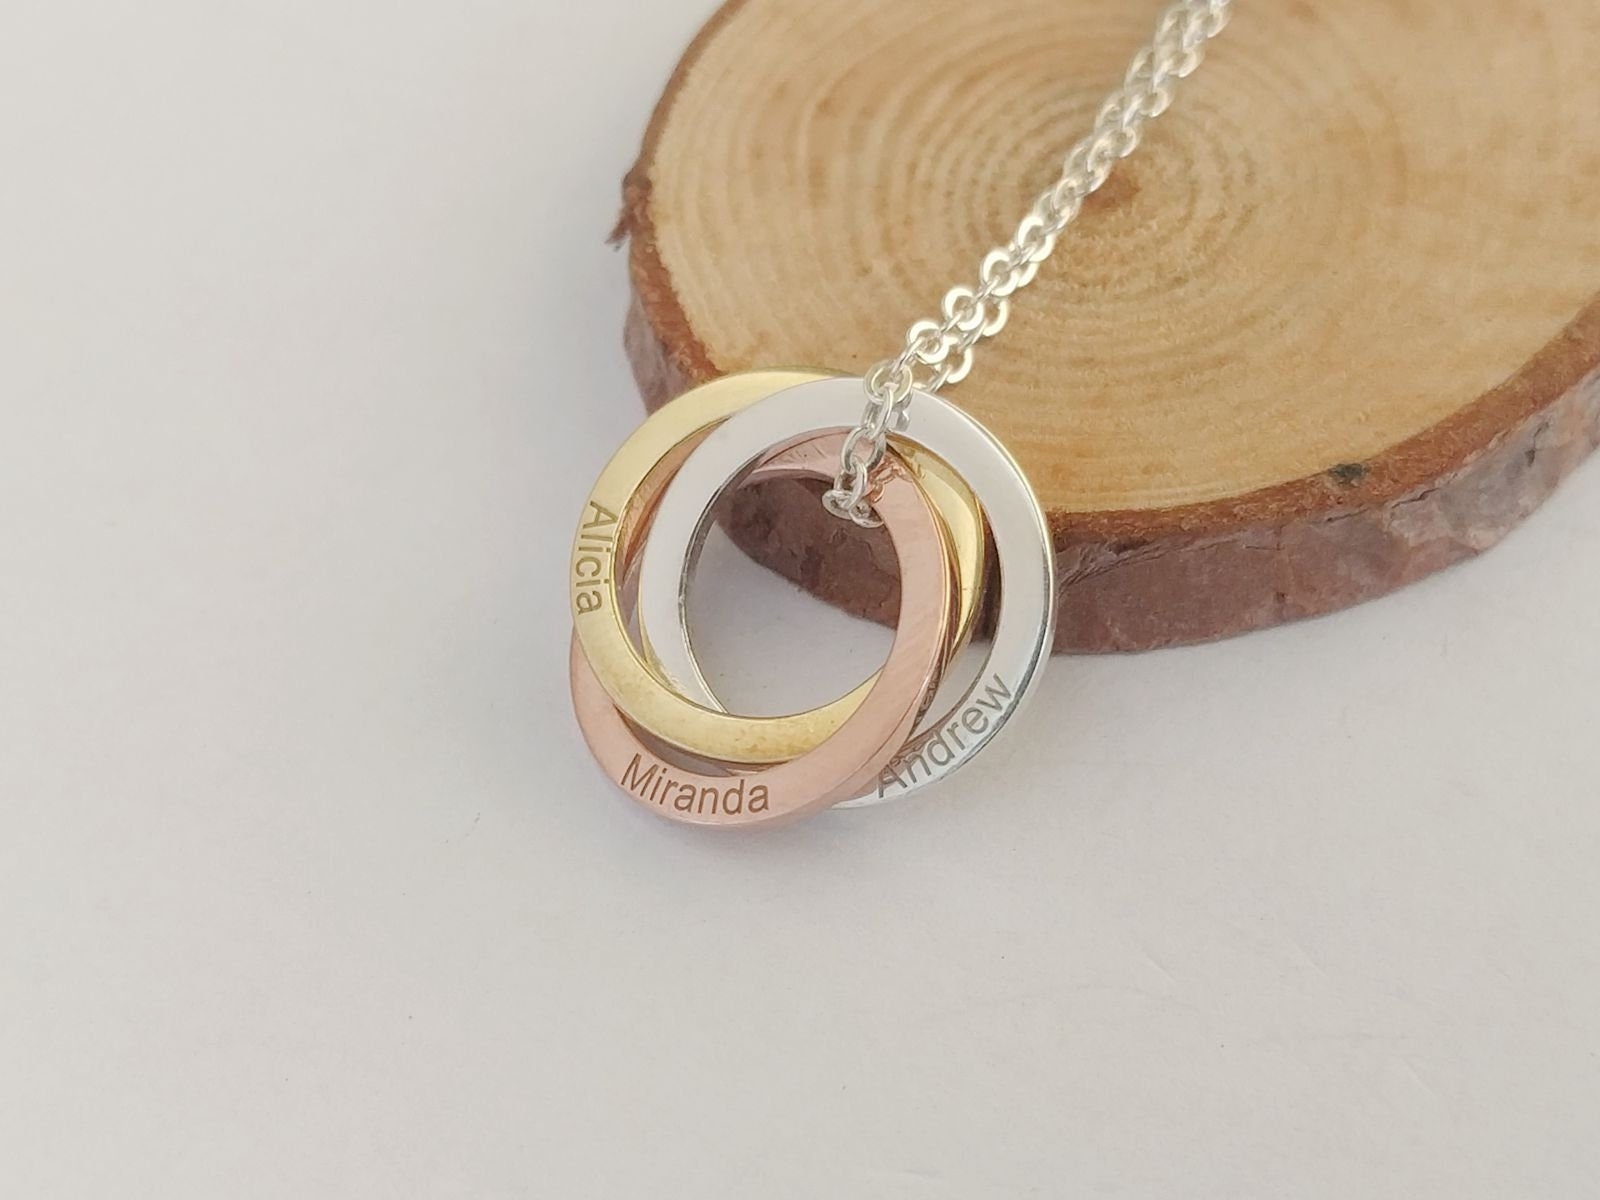 50 Gift Ideas for Mums | PERSONALISED RUSSIAN RING NECKLACE | Beanstalk Mums